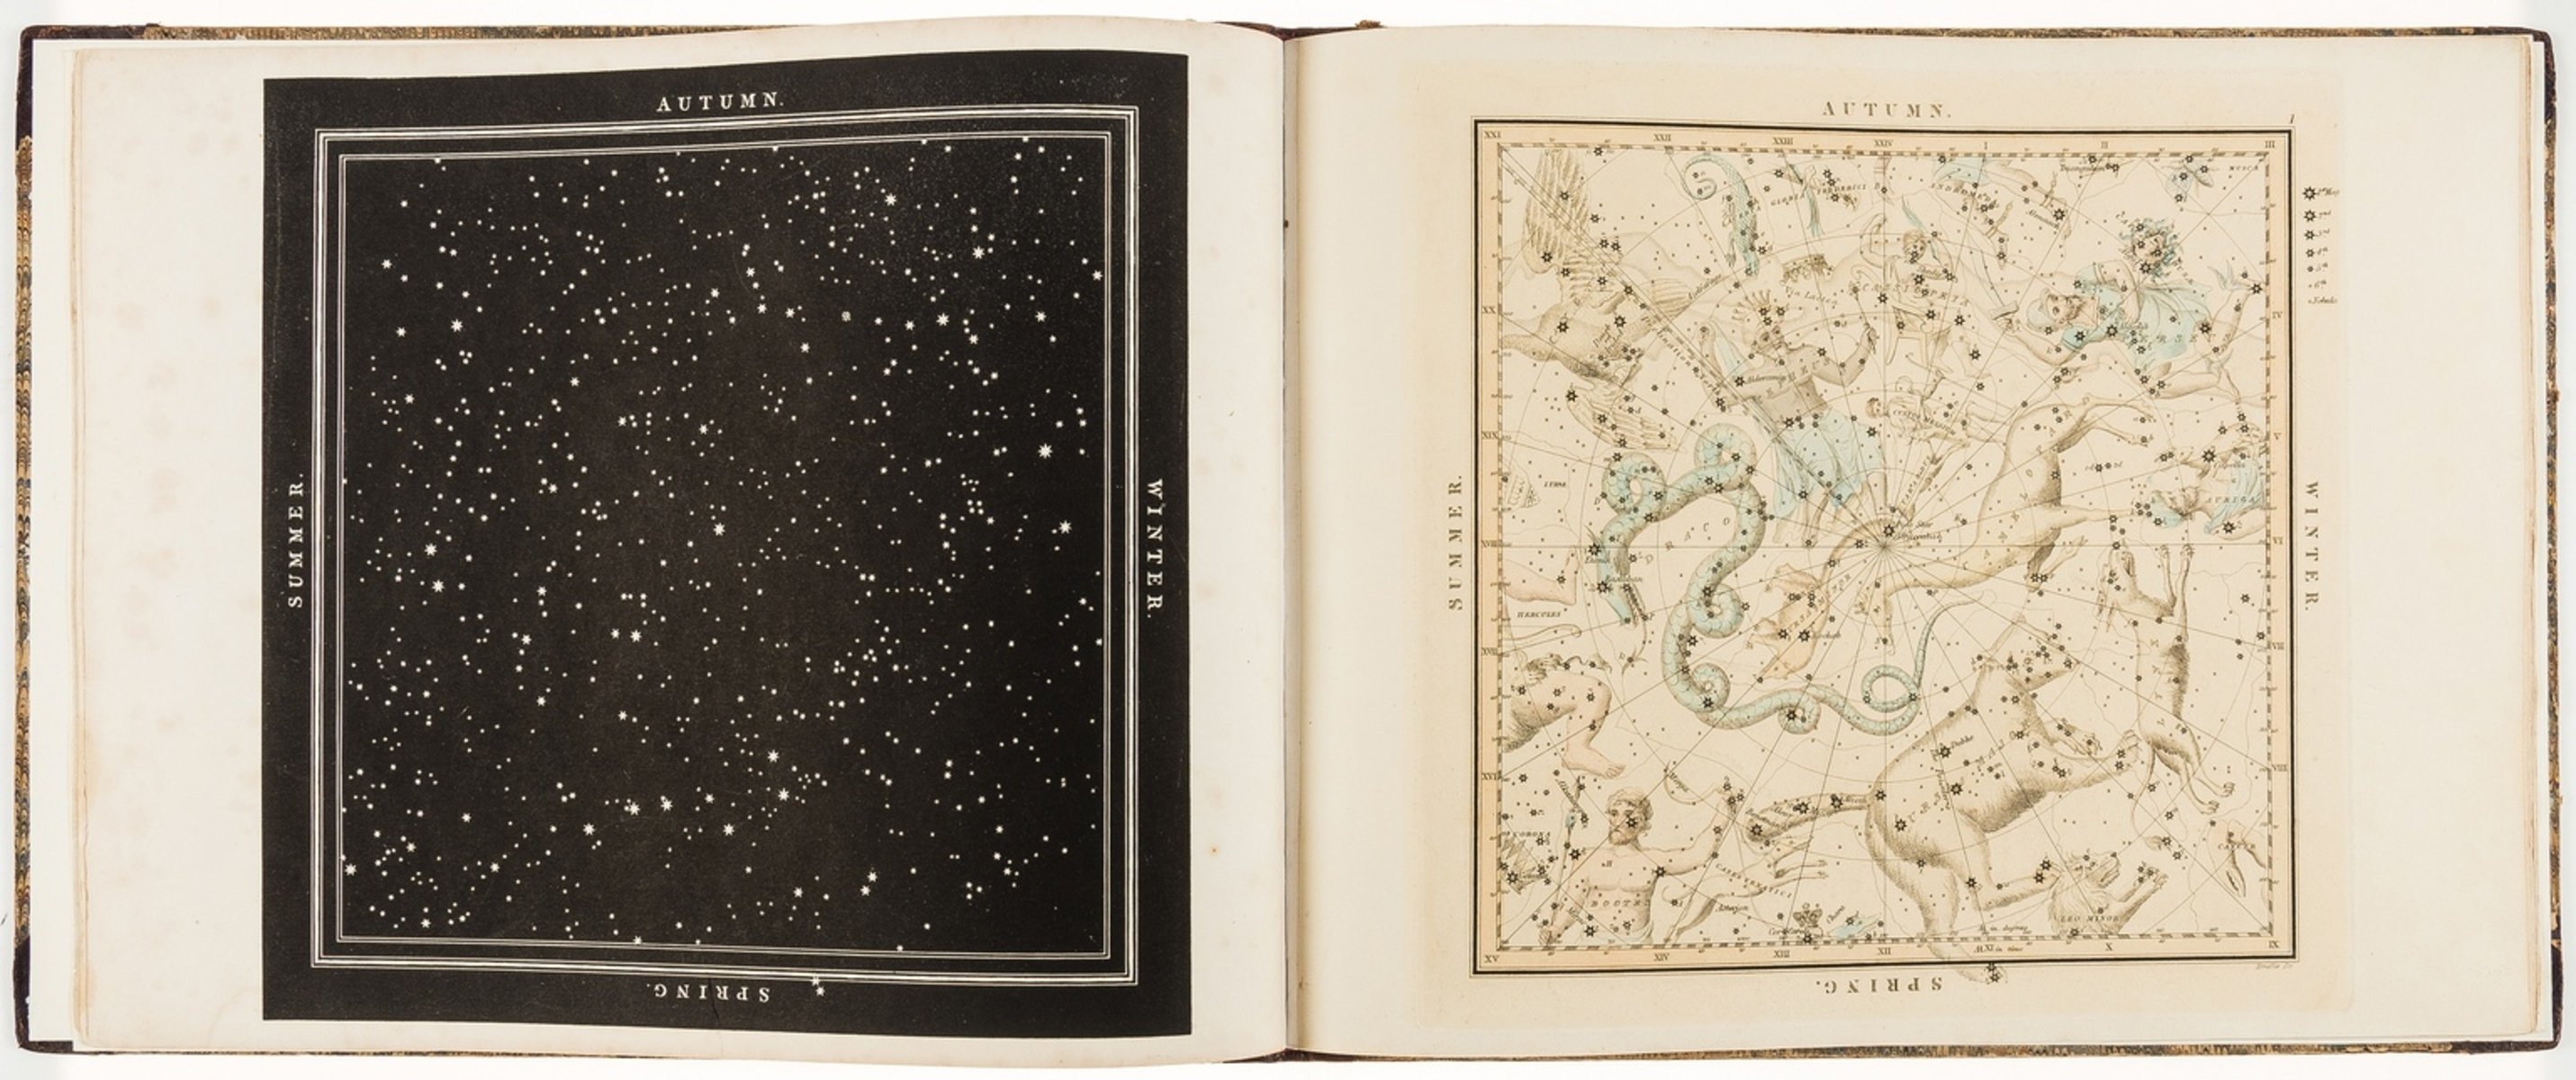 Celestial Atlas.- Middleton (James) A Celestial Atlas containing Maps of all the Constellations …